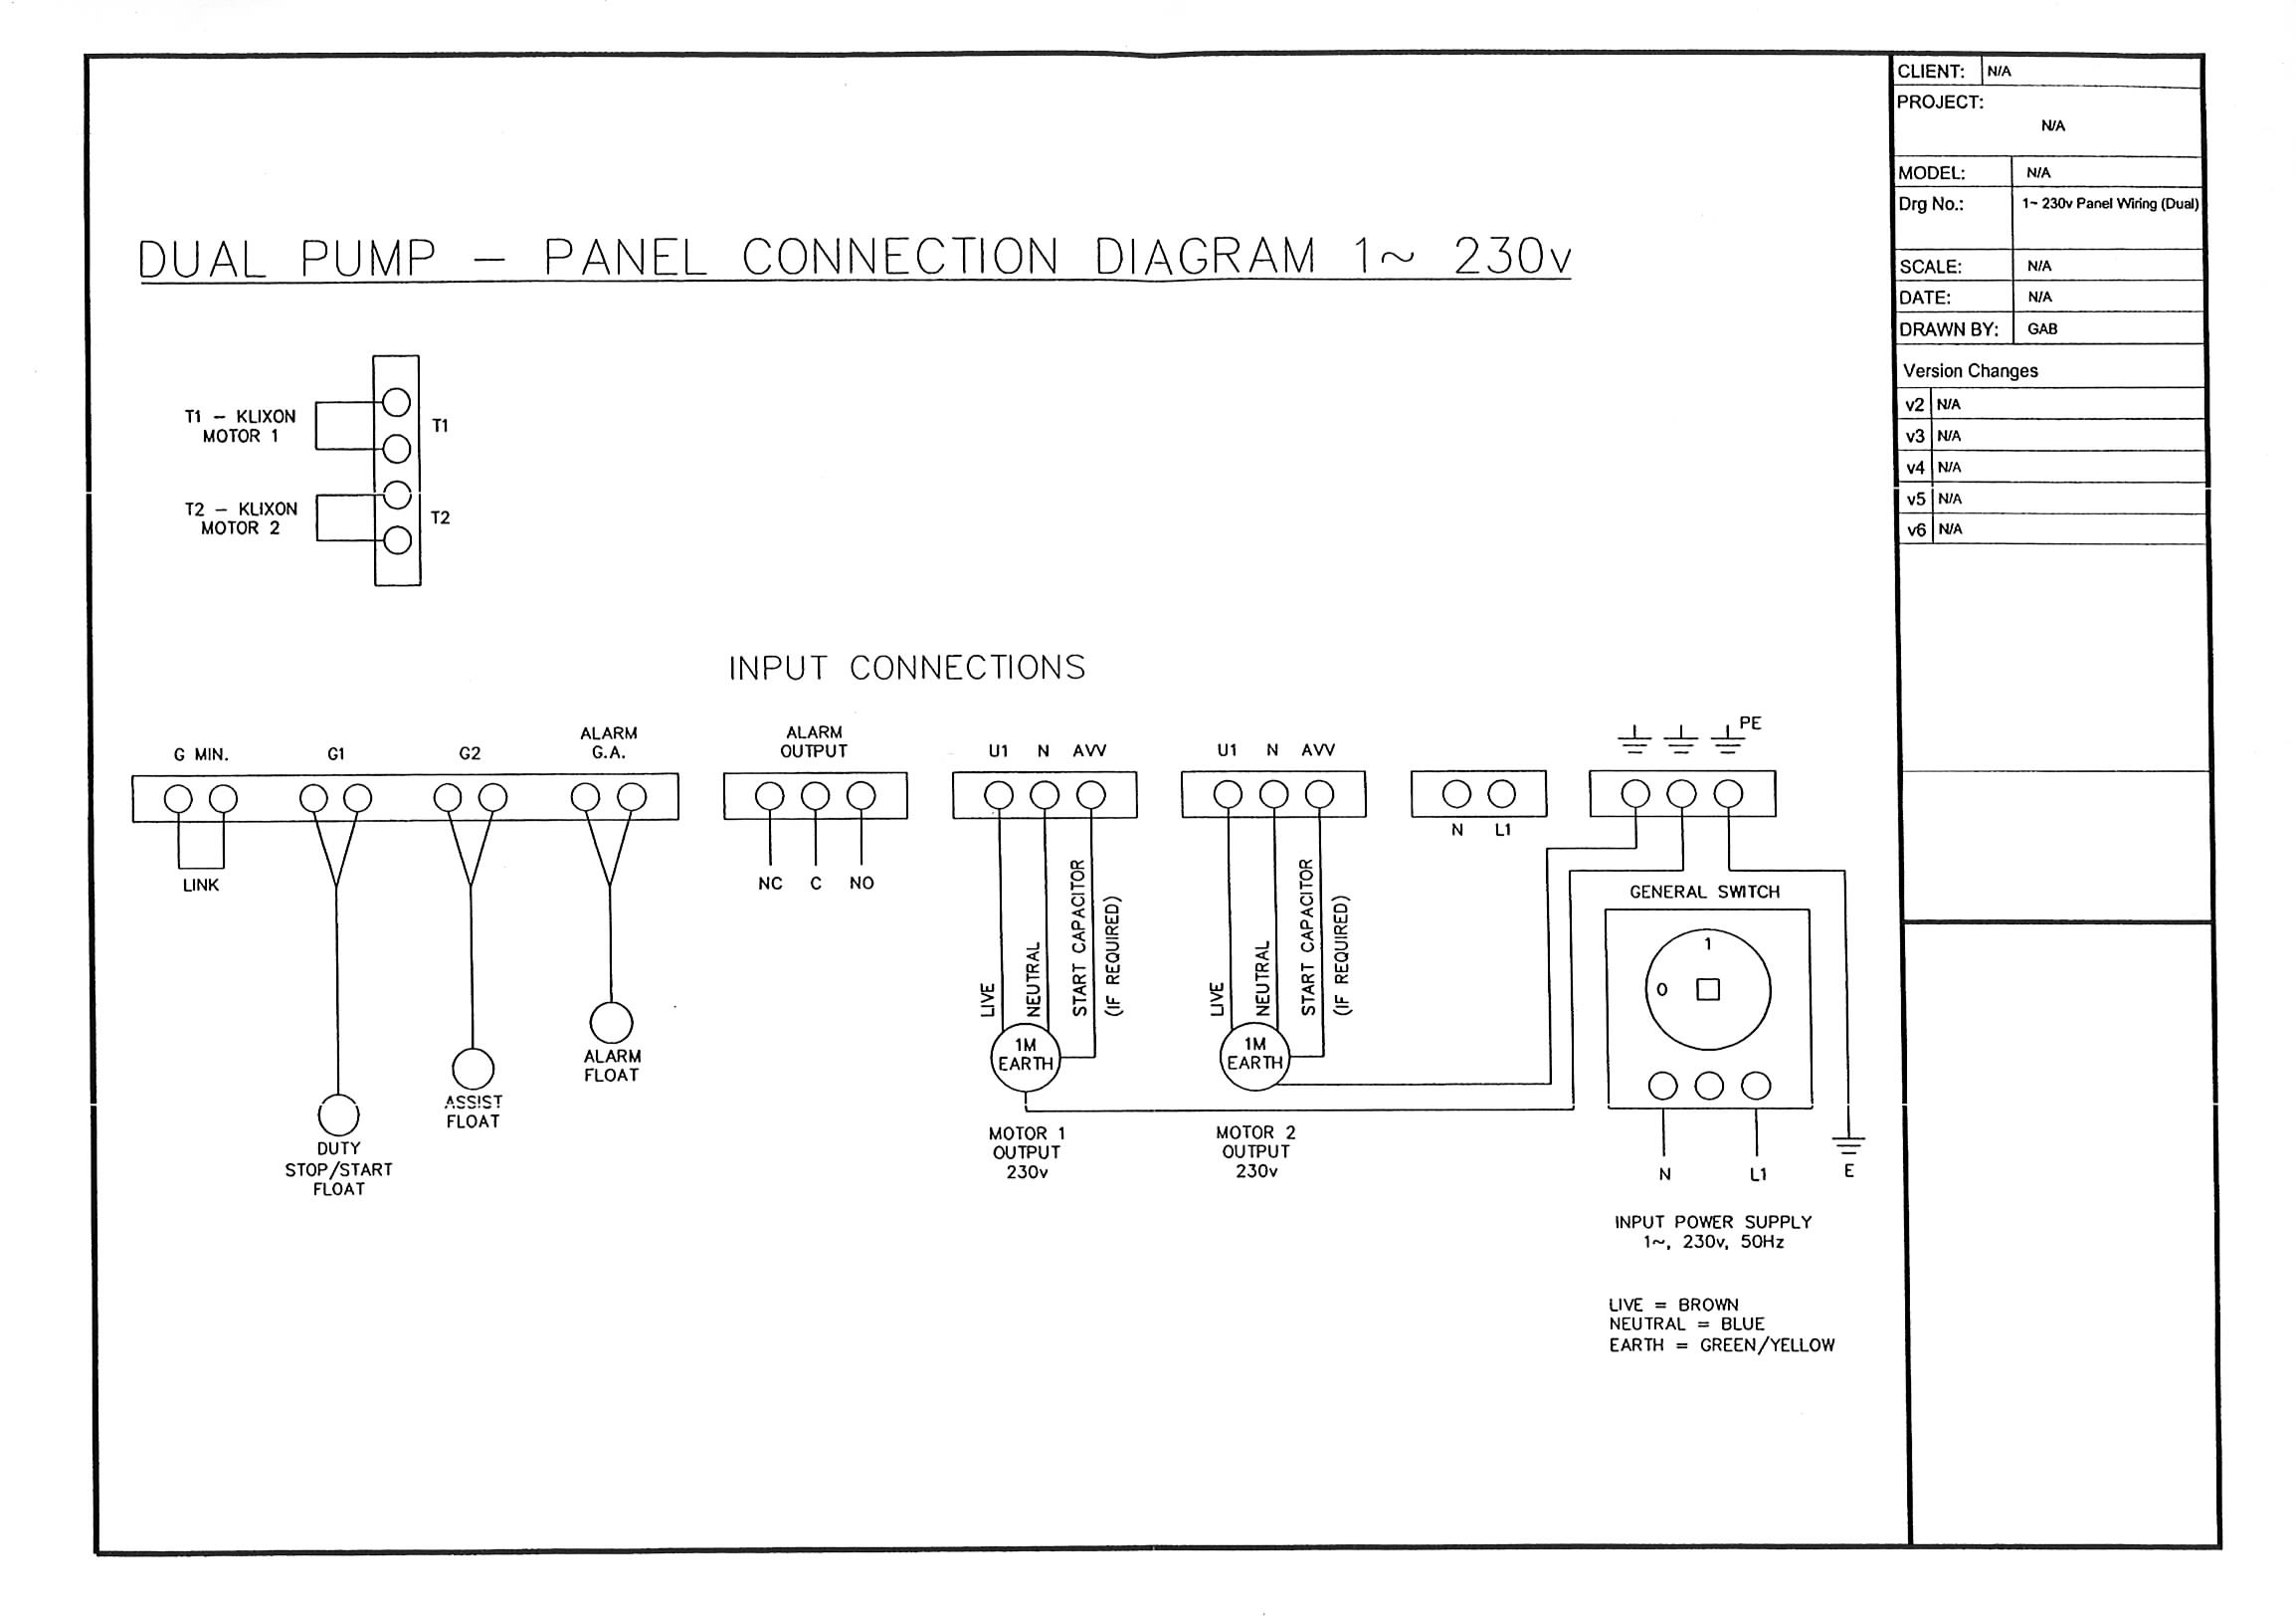 AES Duplex Dual Pump Control Panel duplex dual pump control panel automated environmental systems fire pump control panel wiring diagram pdf at soozxer.org